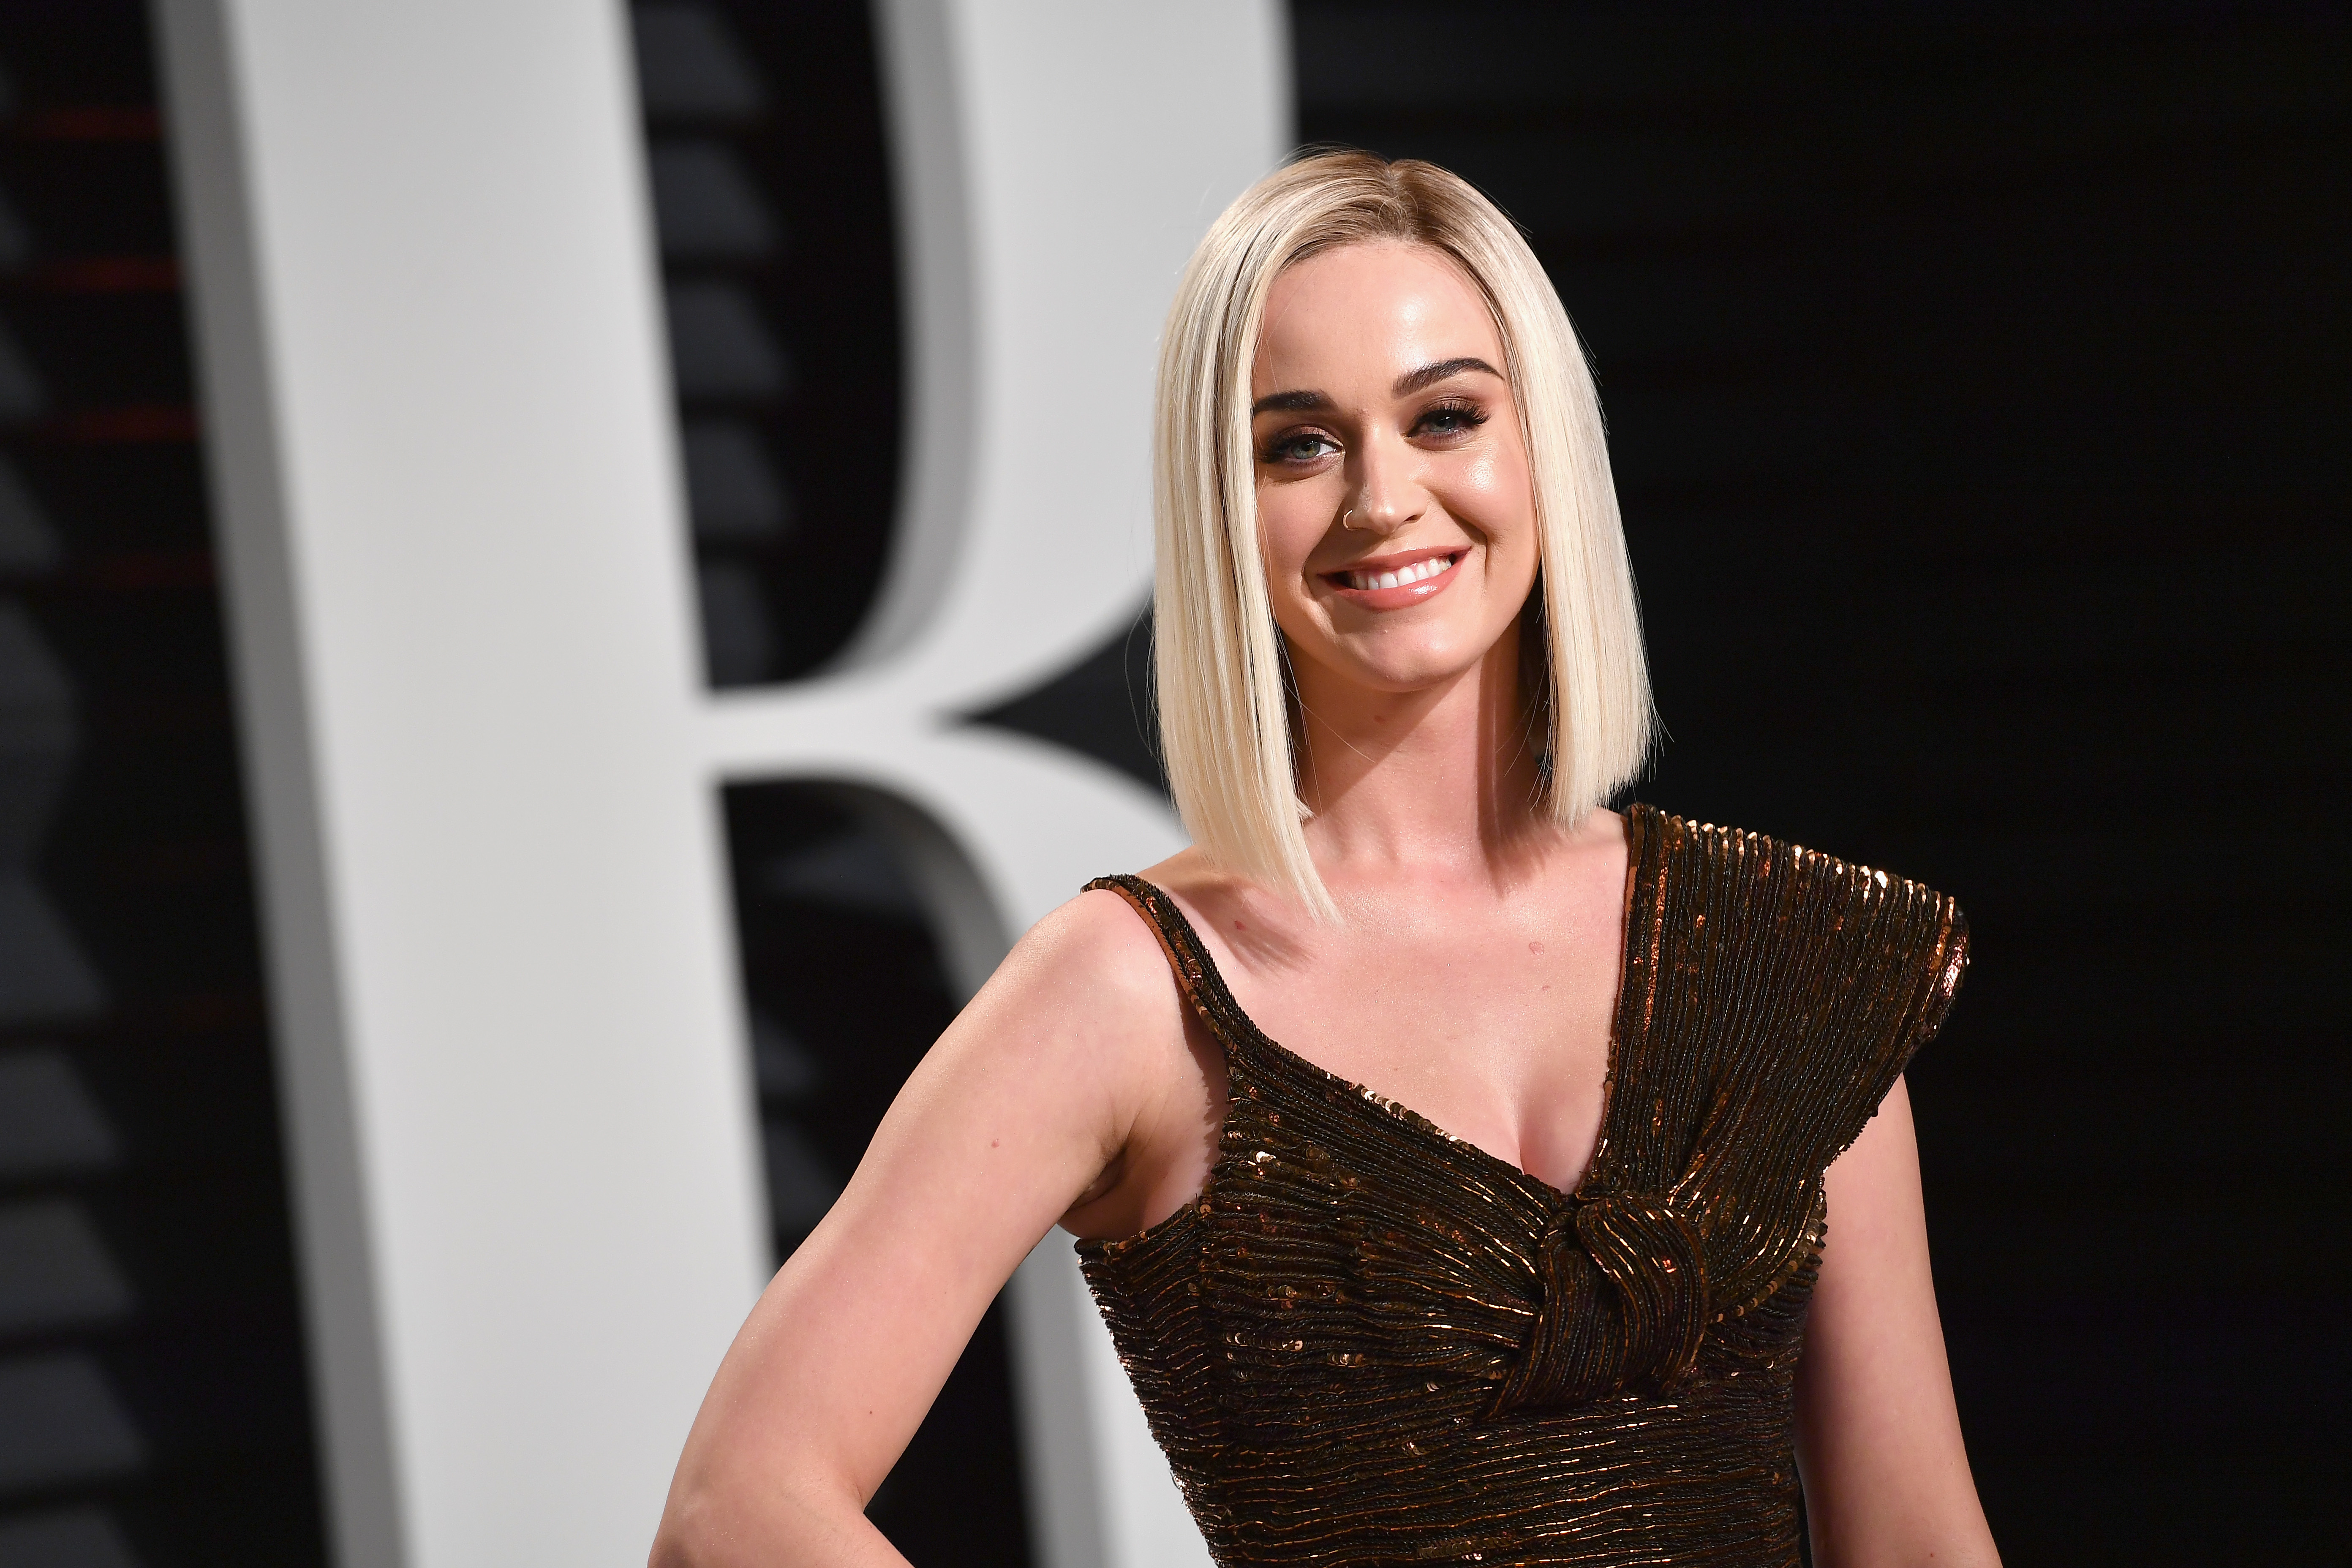 Katy Perry on Being Single: 'Everything Doesn't Have to End in Marriage'